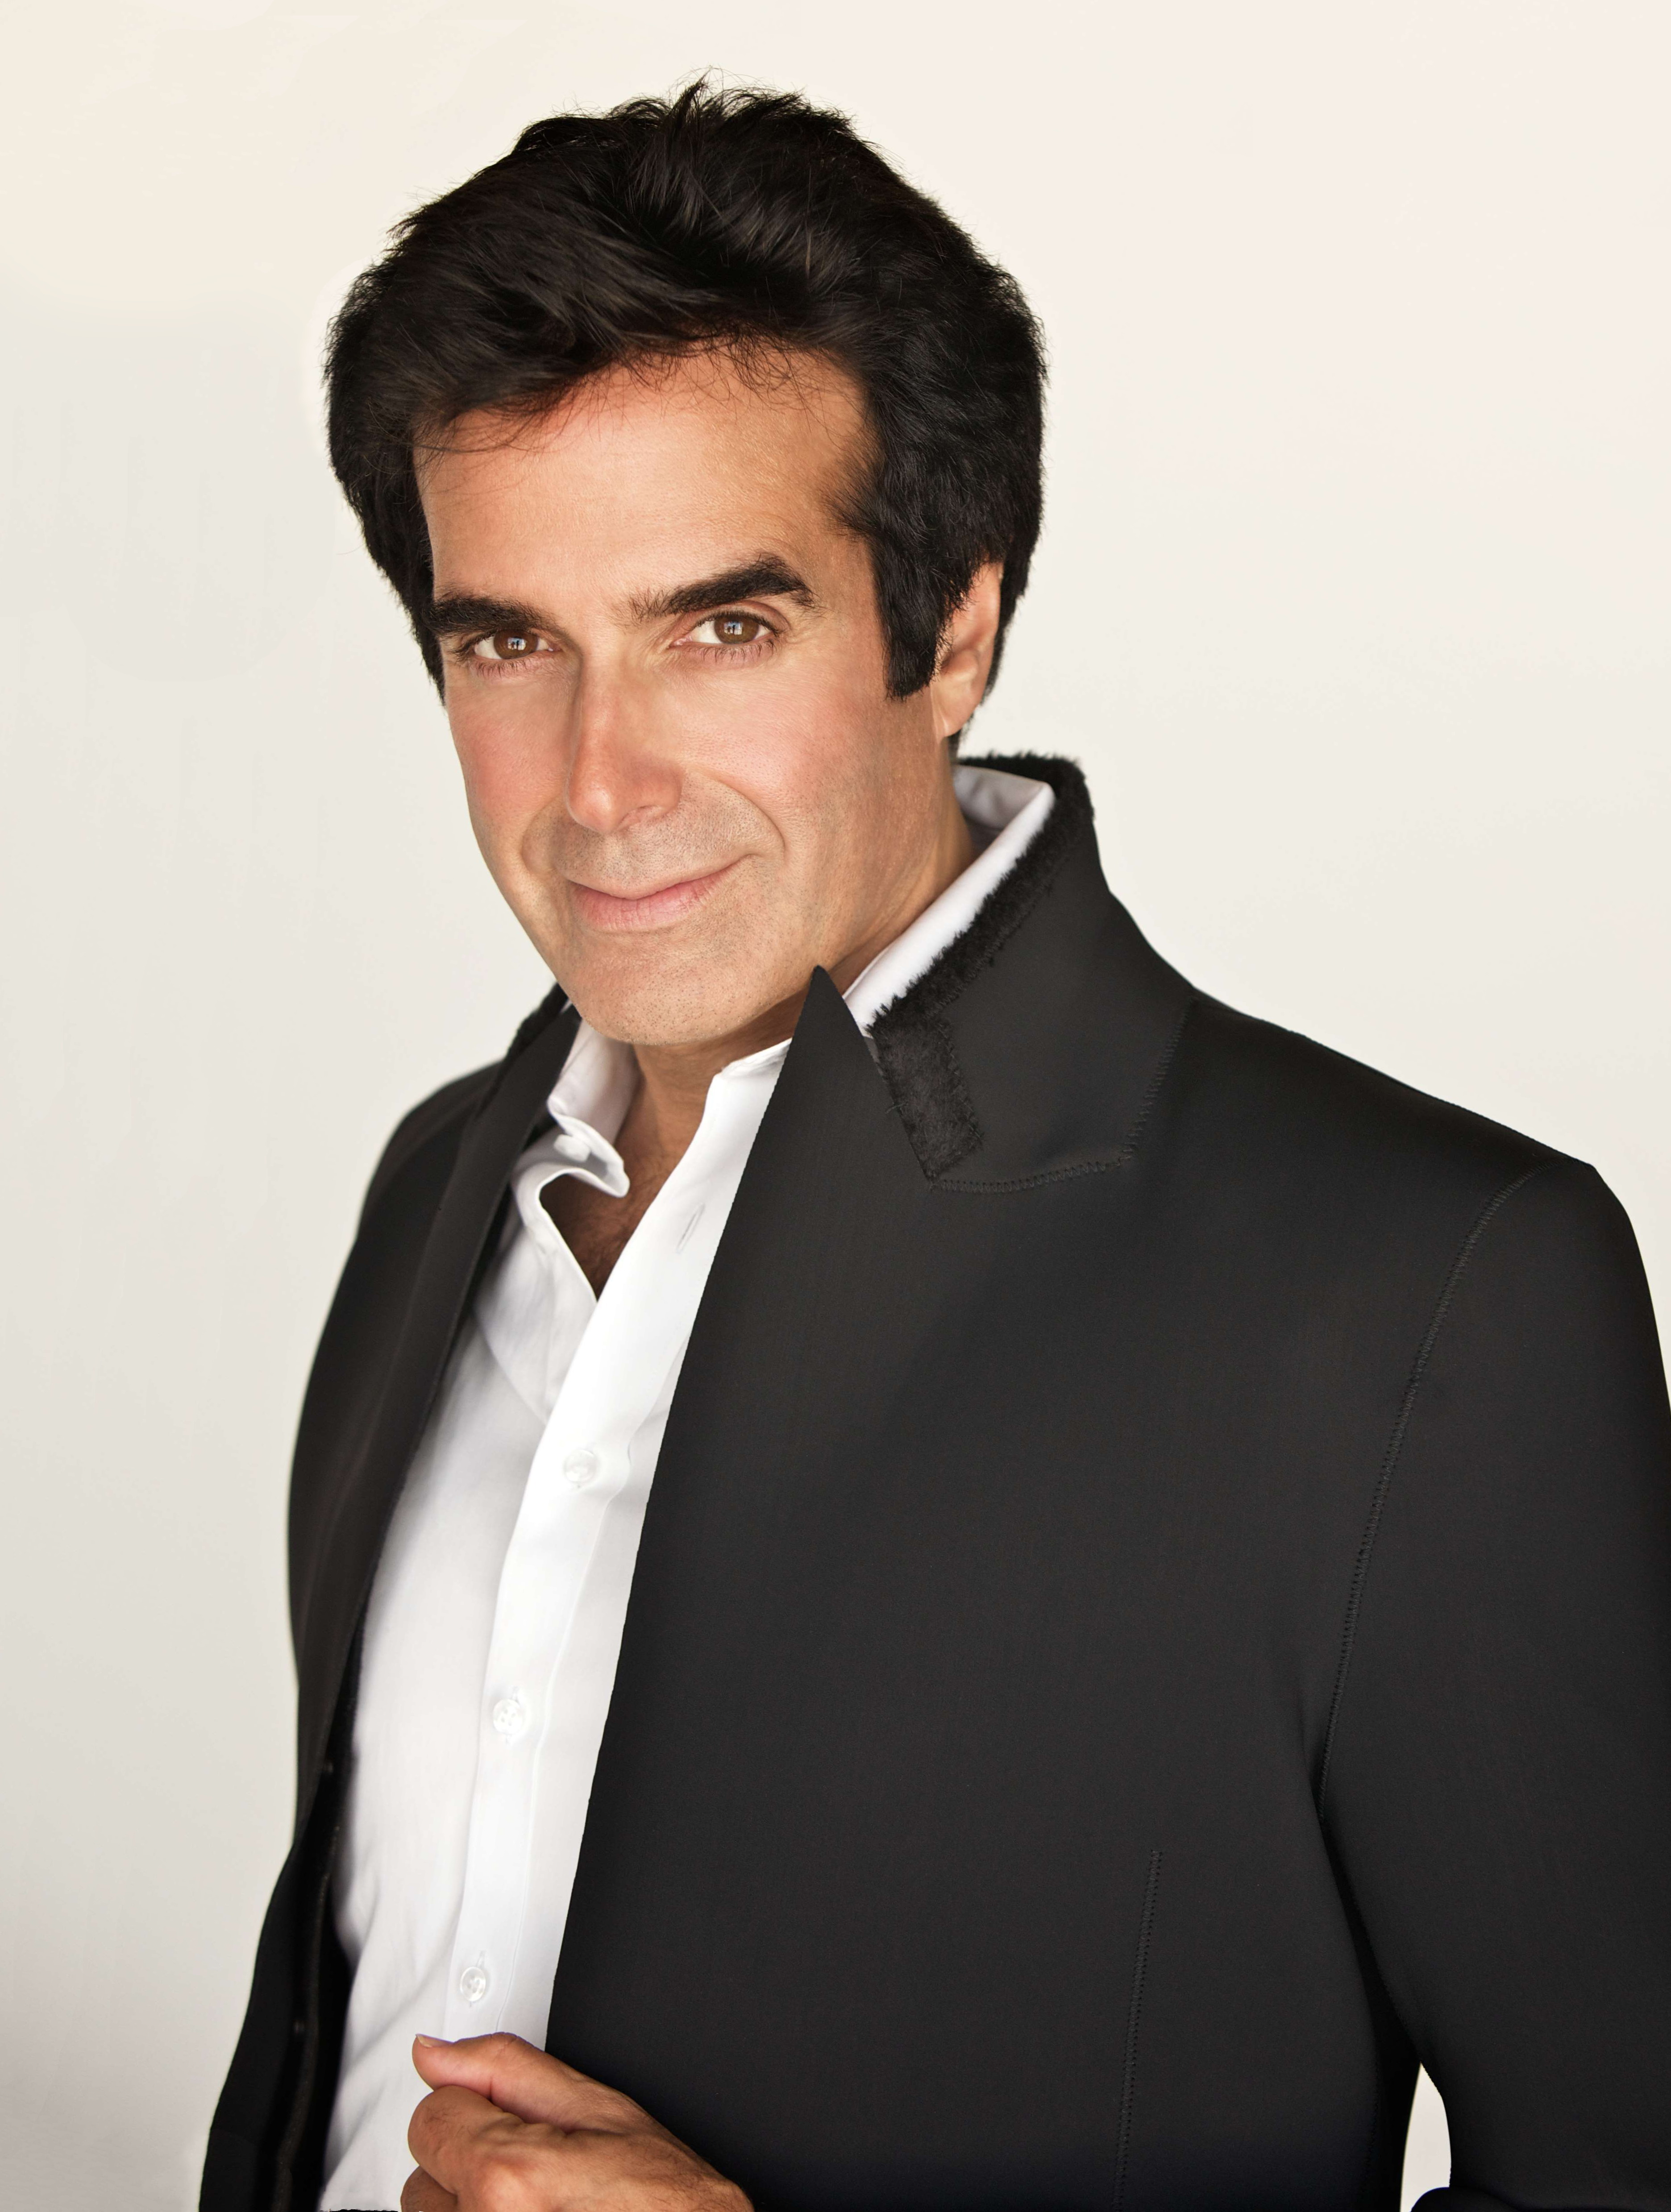 Bühnenmagier David Copperfield